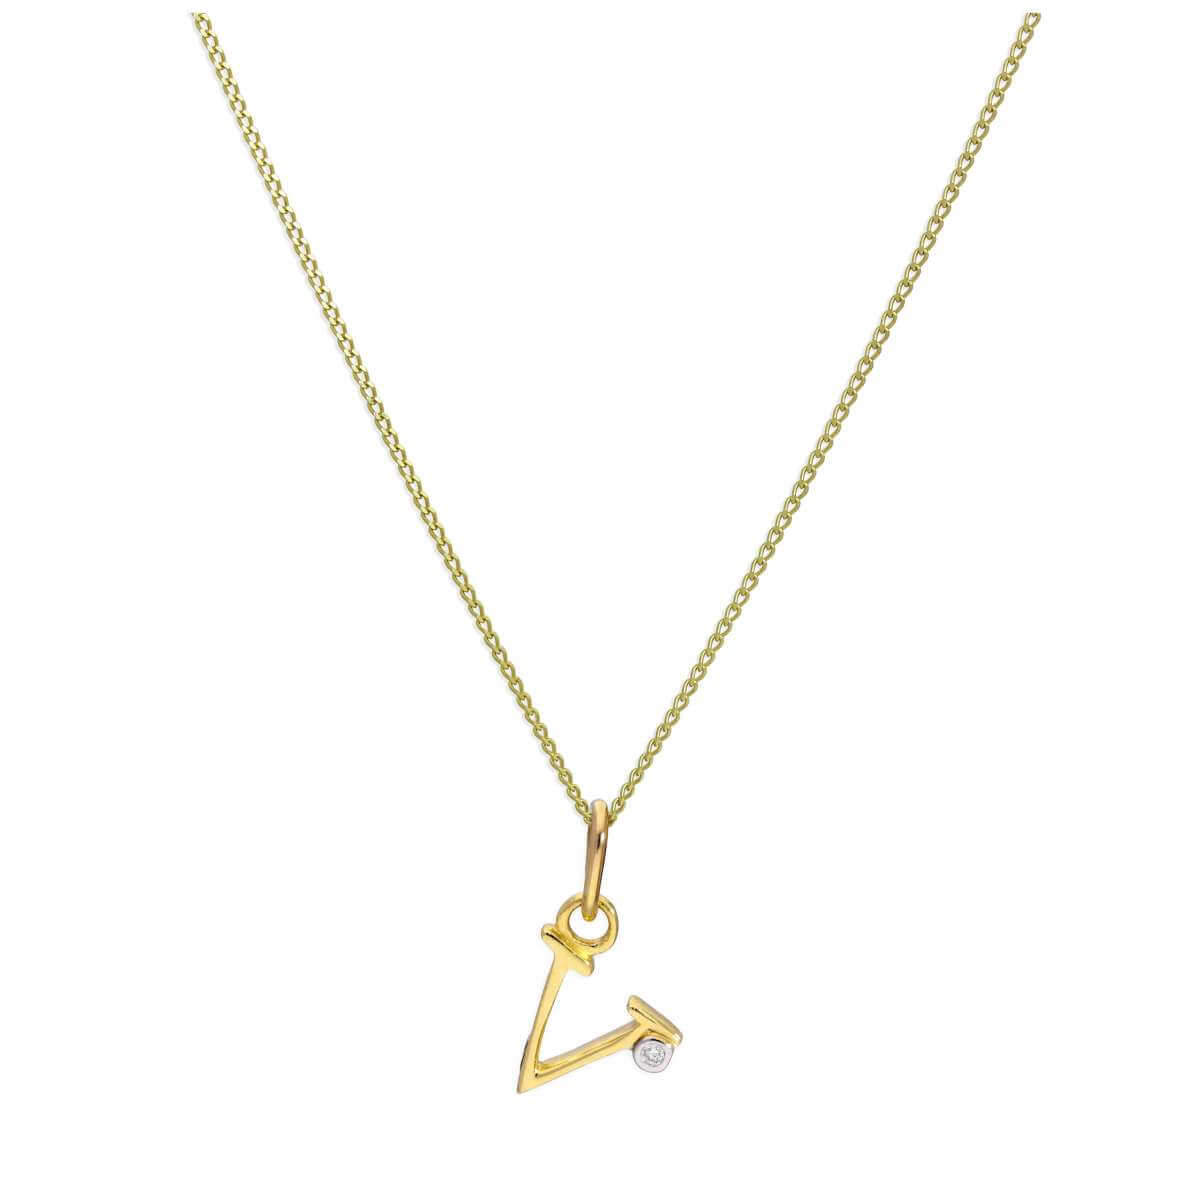 9ct Yellow Gold Single Stone Diamond 0.4 points Letter V Necklace Pendant 16 - 20 Inches